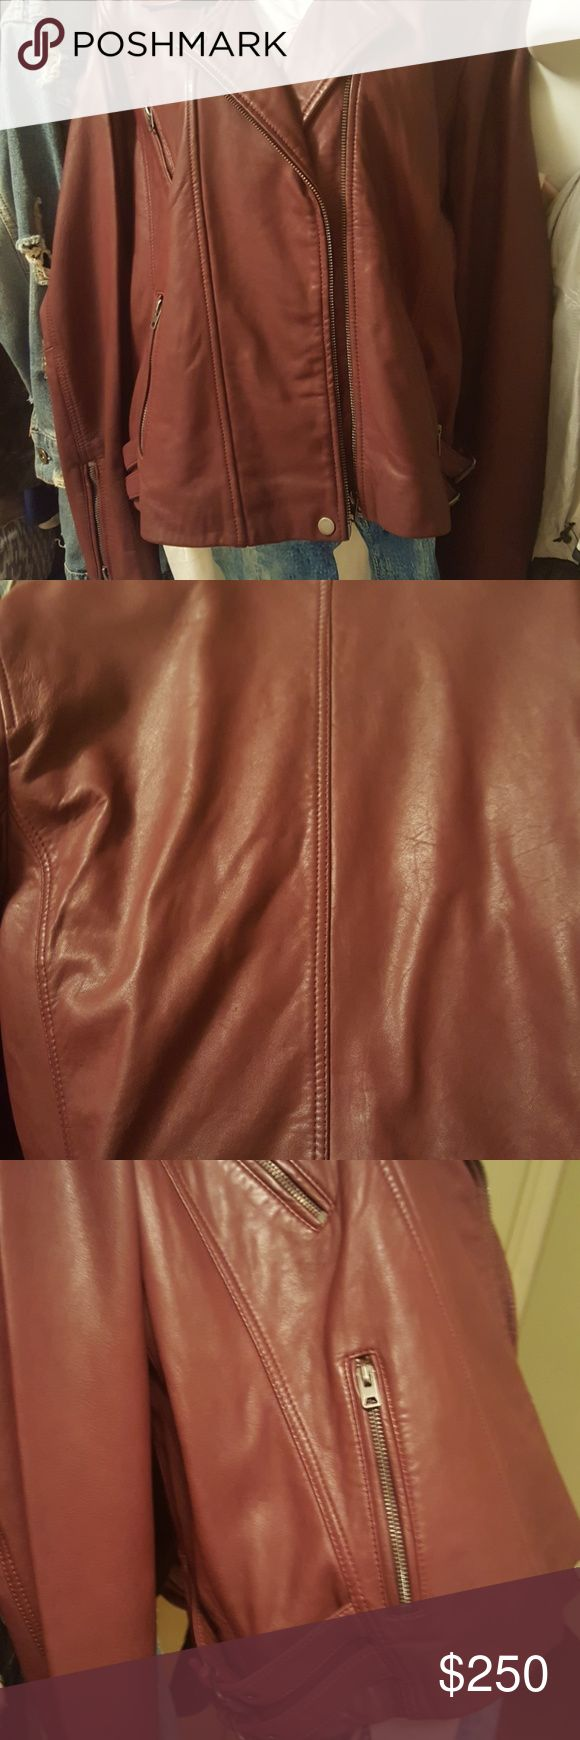 Lucky Brand Motorcycle Jacket Leather Motorcycle Jacket in Burgundy color.  Three pockets, double belts on side & zippers on sleeves for maximum comfort.  Offers Welcomed Lucky Brand Jackets & Coats Utility Jackets